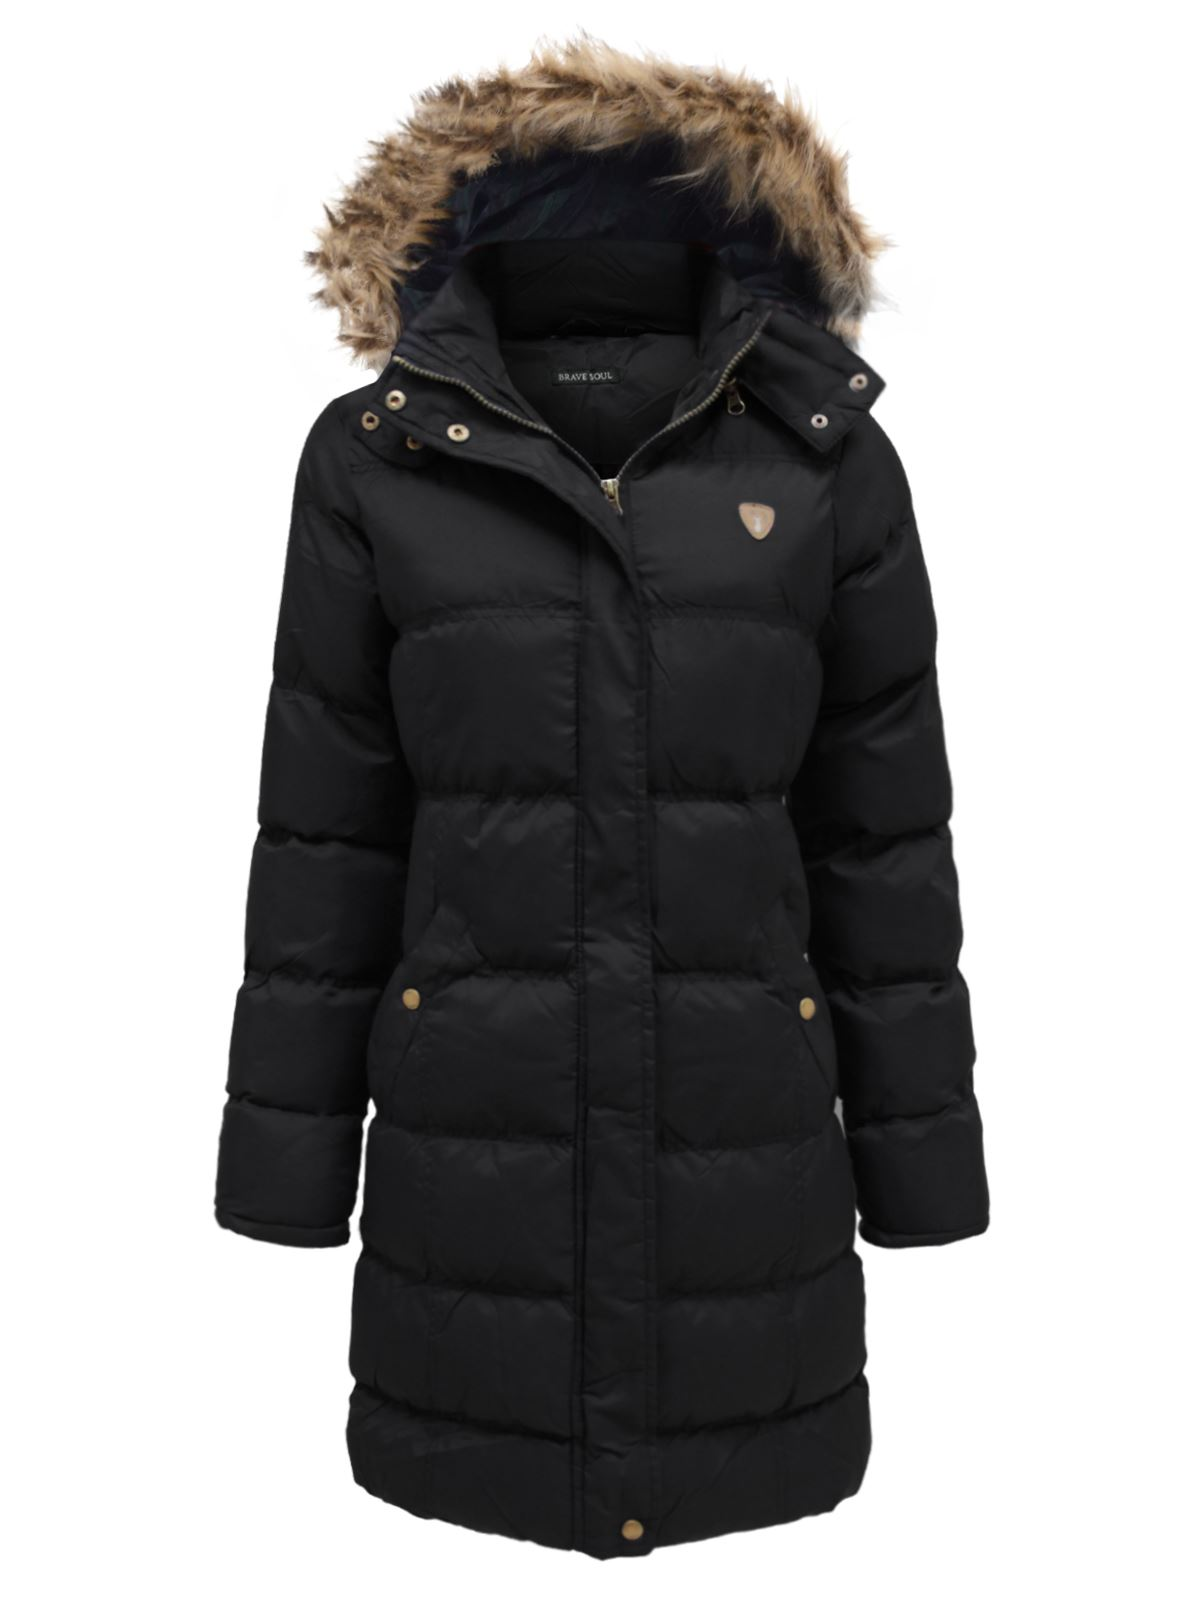 Liz Claiborne Heavyweight Water Resistant Puffer Jacket-Plus. Add To Cart. New. from $ after coupon. Free Country Hooded Water Resistant Lightweight Softshell Jacket-Plus. Add To Cart Excelled® Faux-Fur Long Solid Coat - Plus (1) Add To Cart. $ after coupon. Fleetstreet Collection Hooded Water Resistant Anorak (1) Add To Cart. $